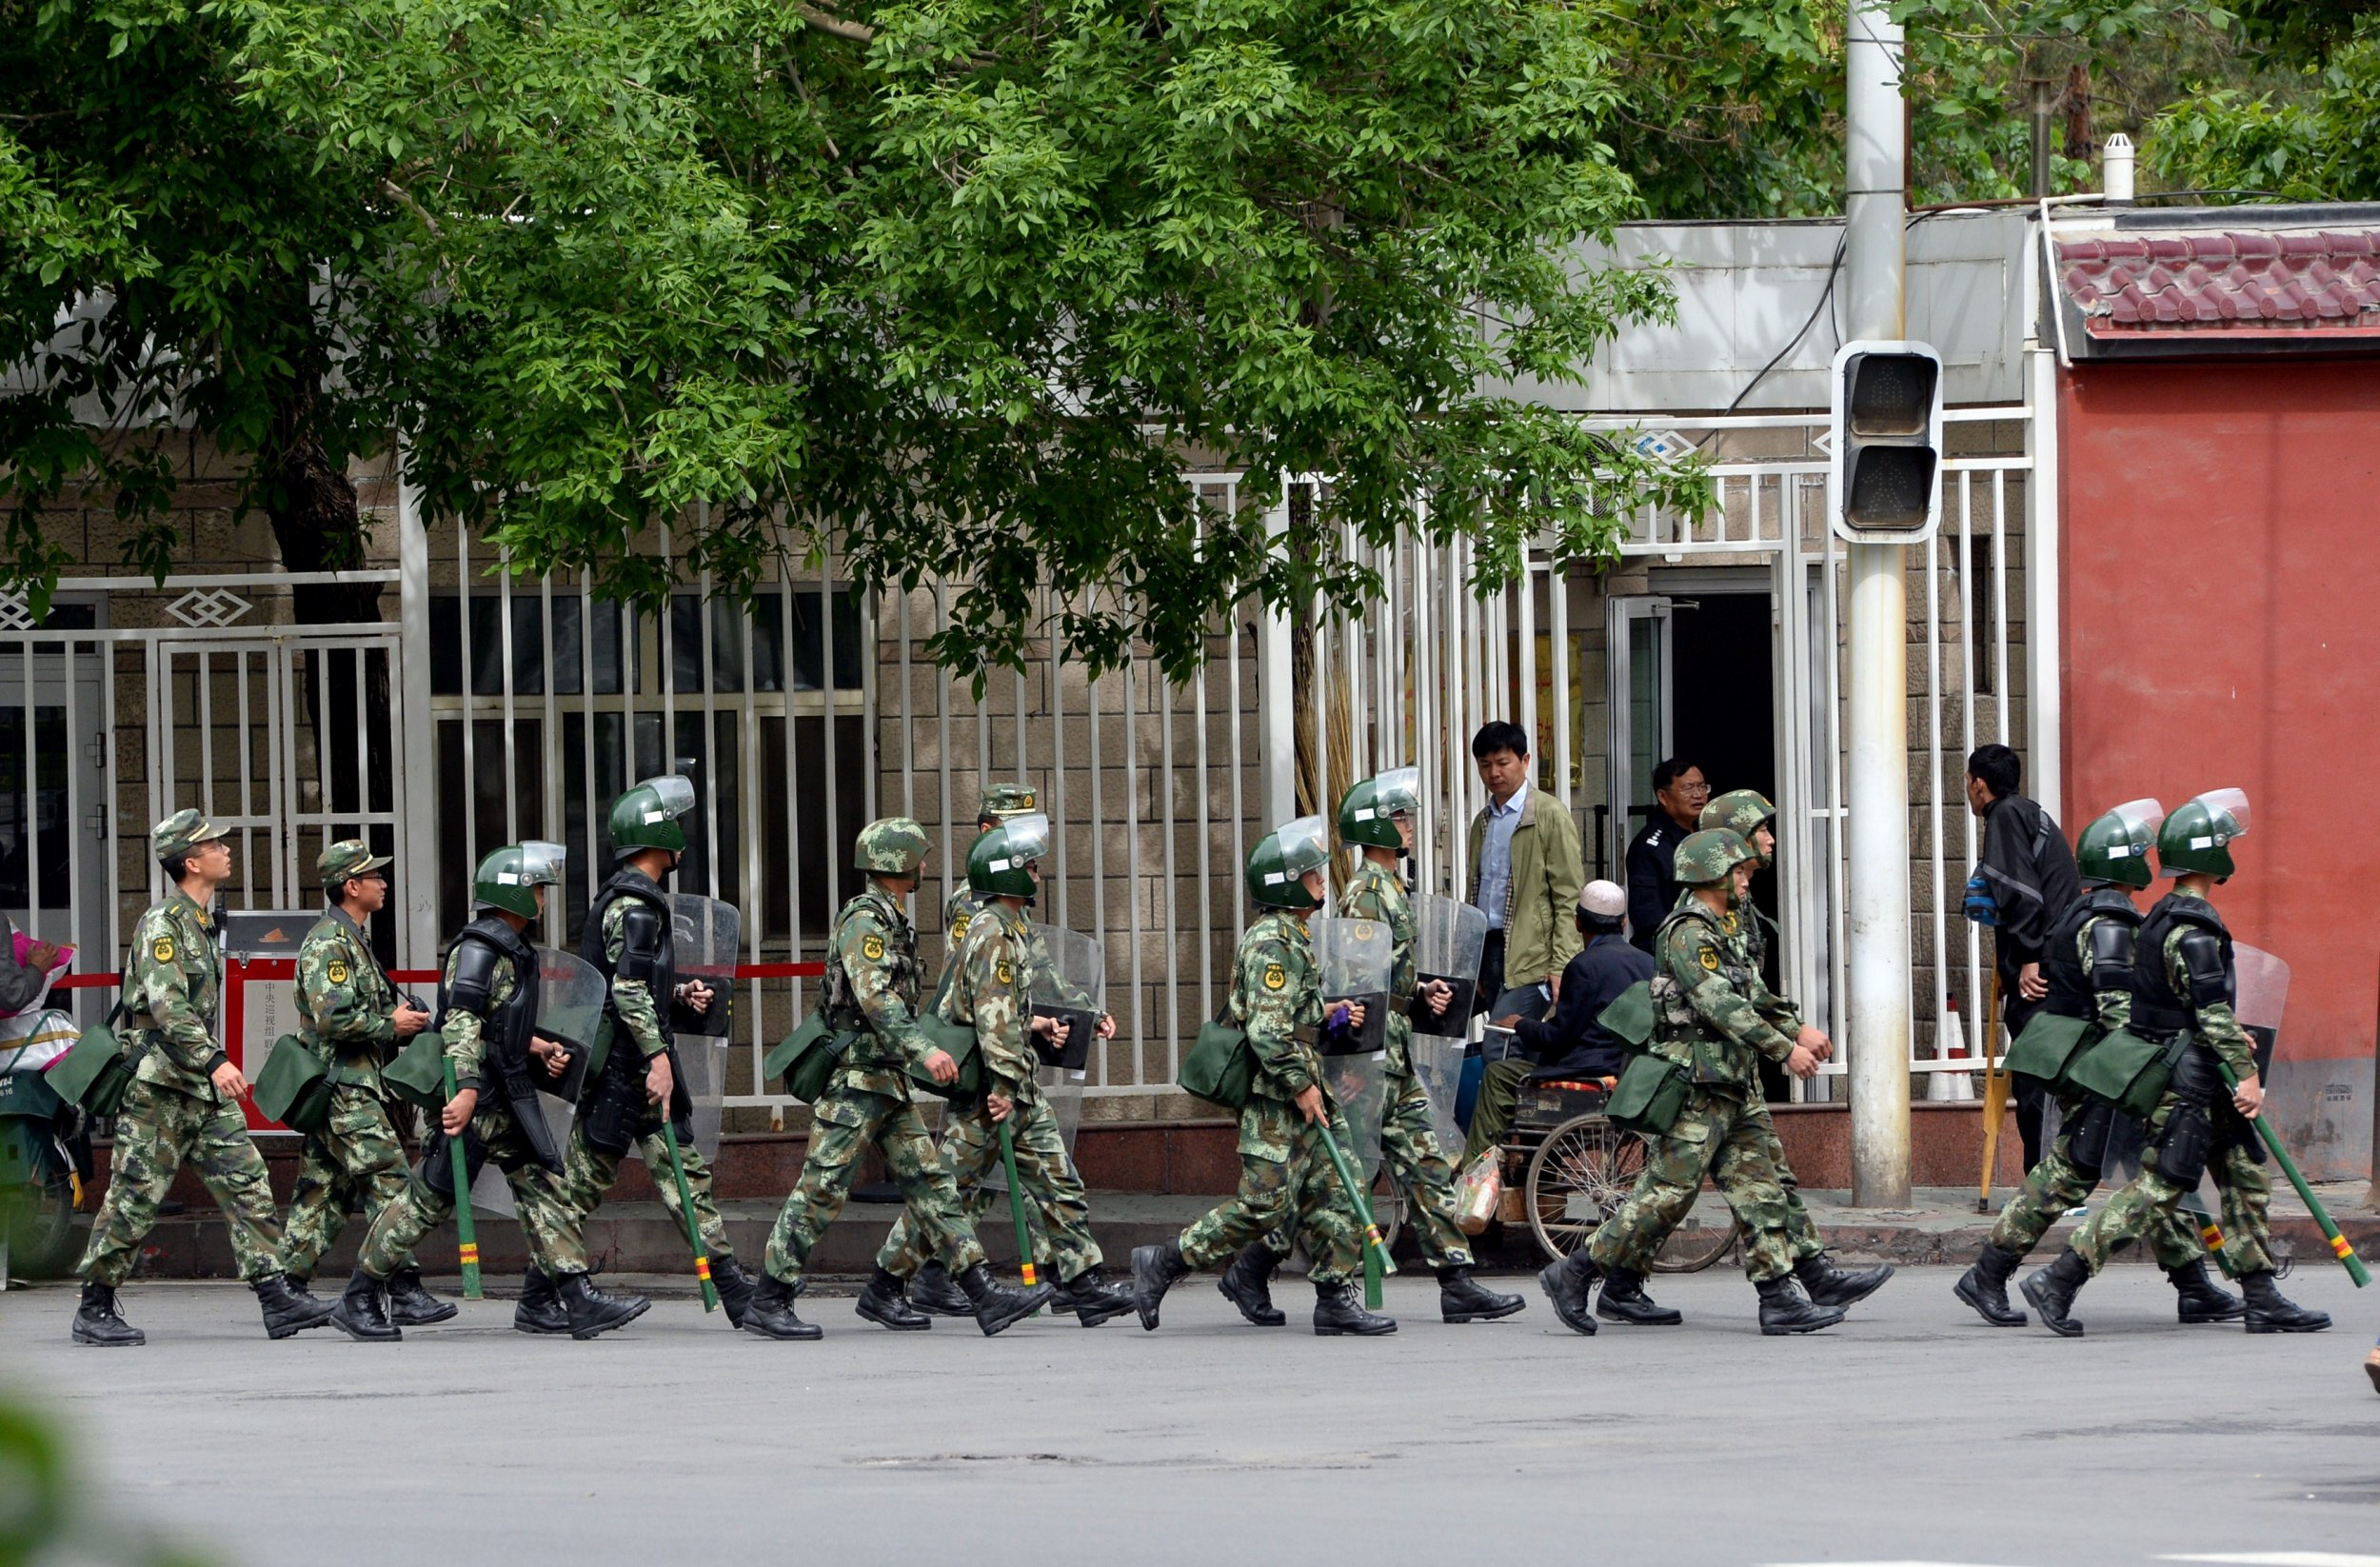 Police in Uighur area of China